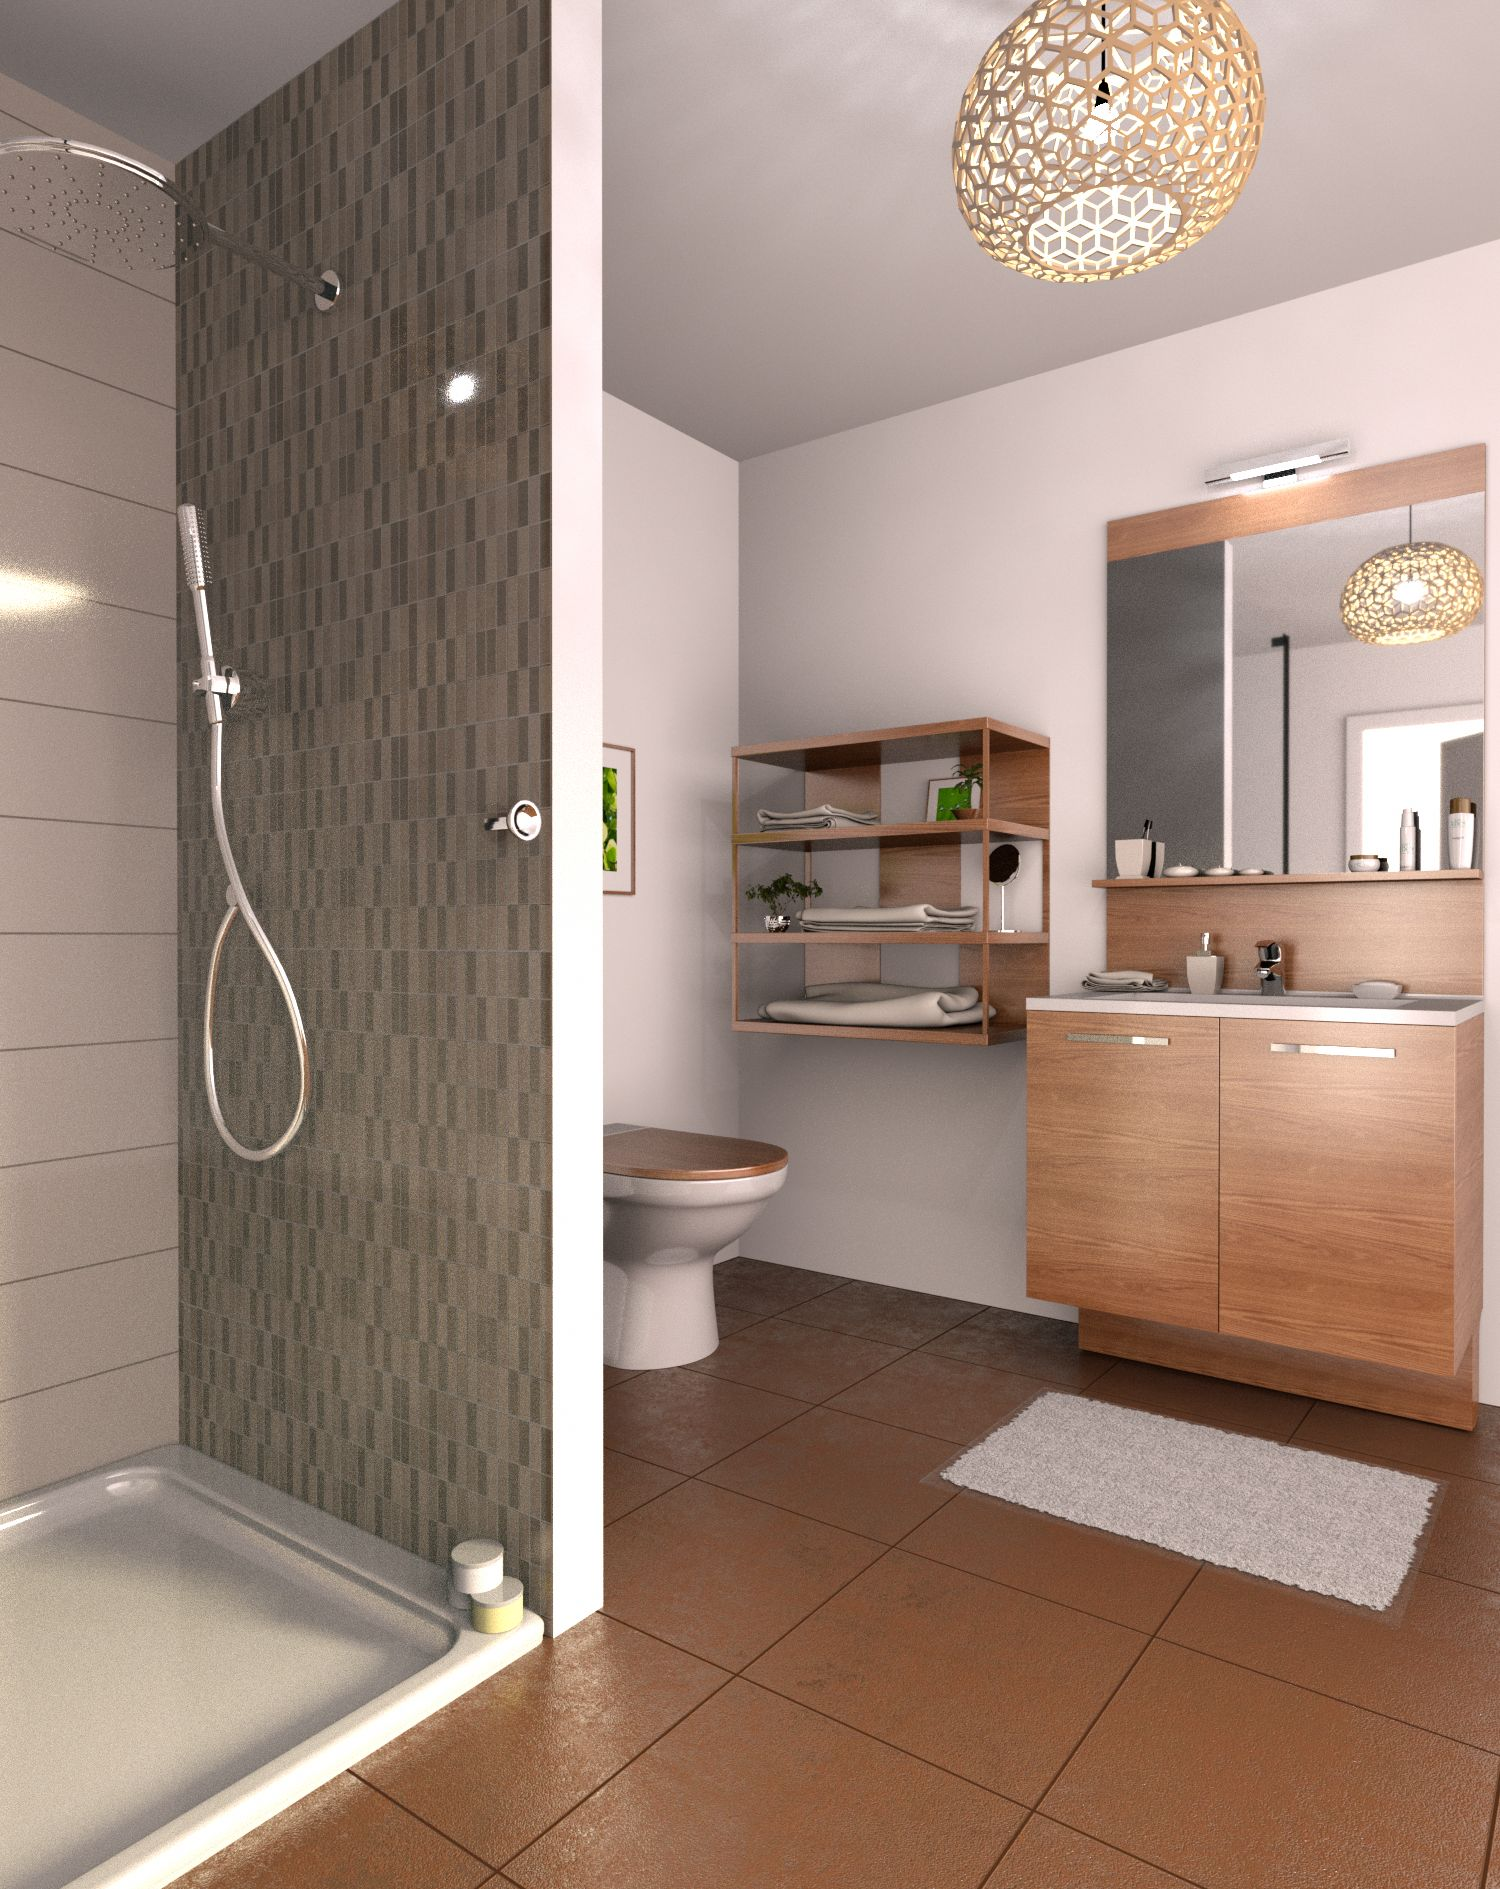 Bathroom Remodel Plan Your Own Bathroom In 3d With Cedar Architect